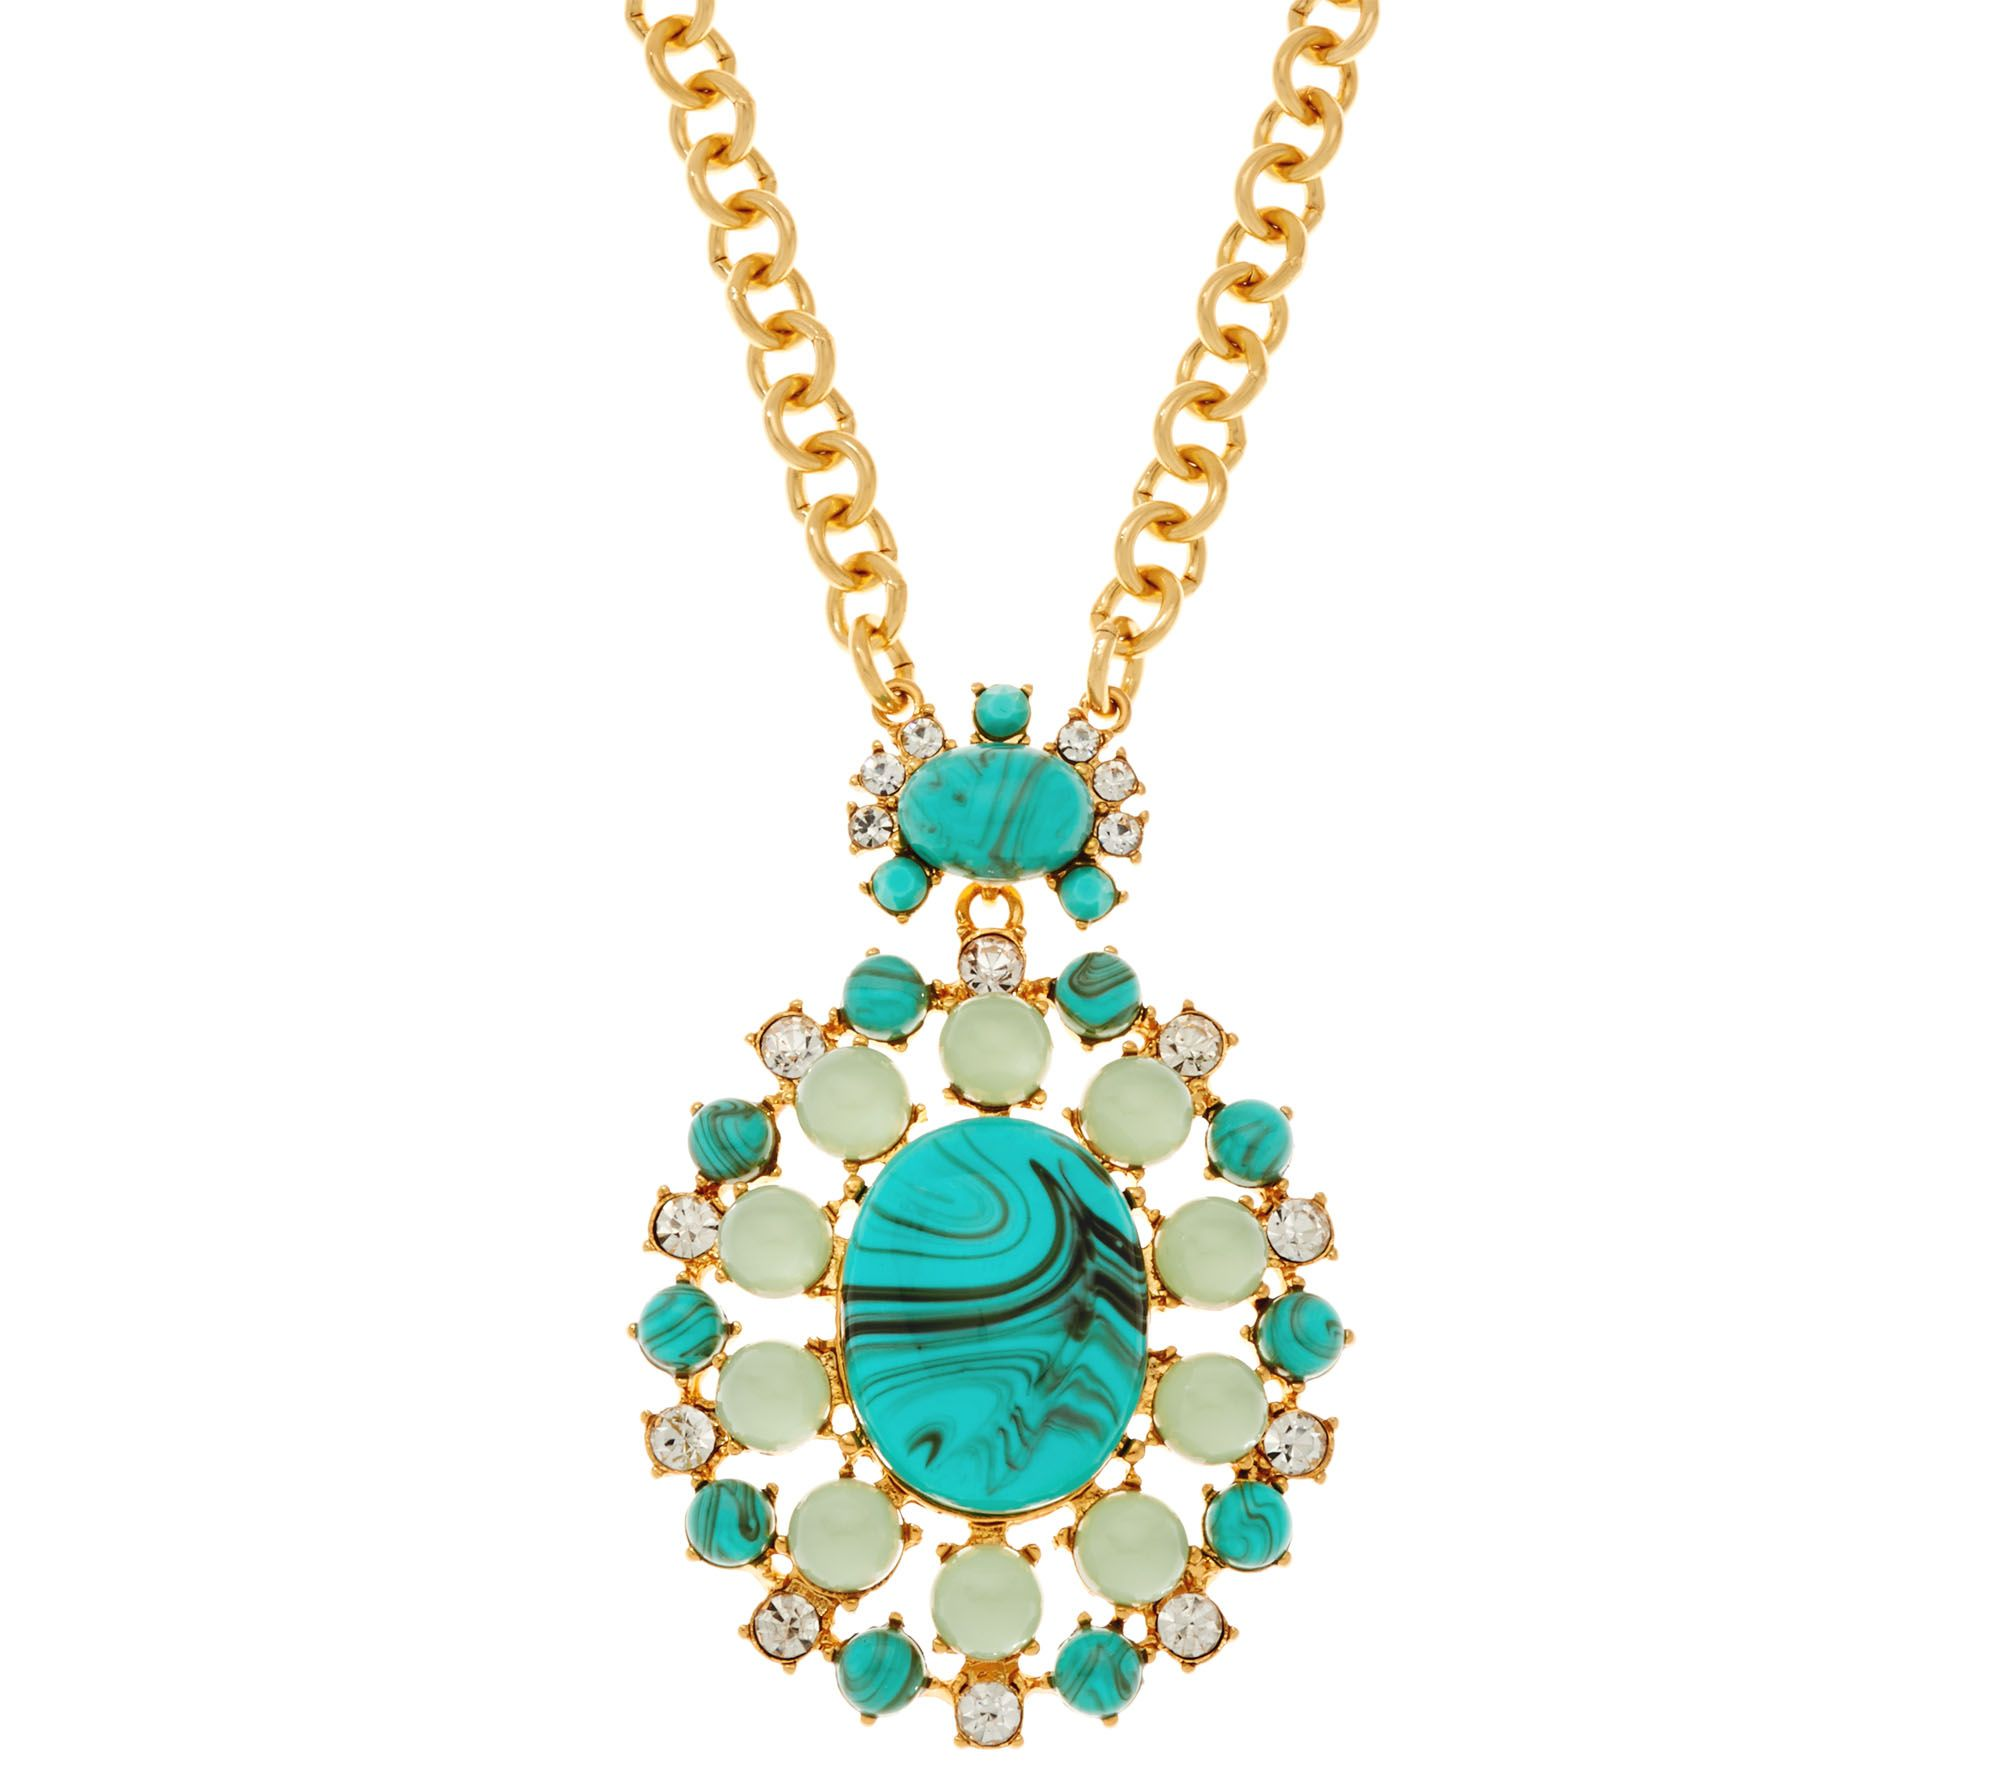 Joan rivers oval cabochon pendant on 32 chain necklace for Joan rivers jewelry necklaces